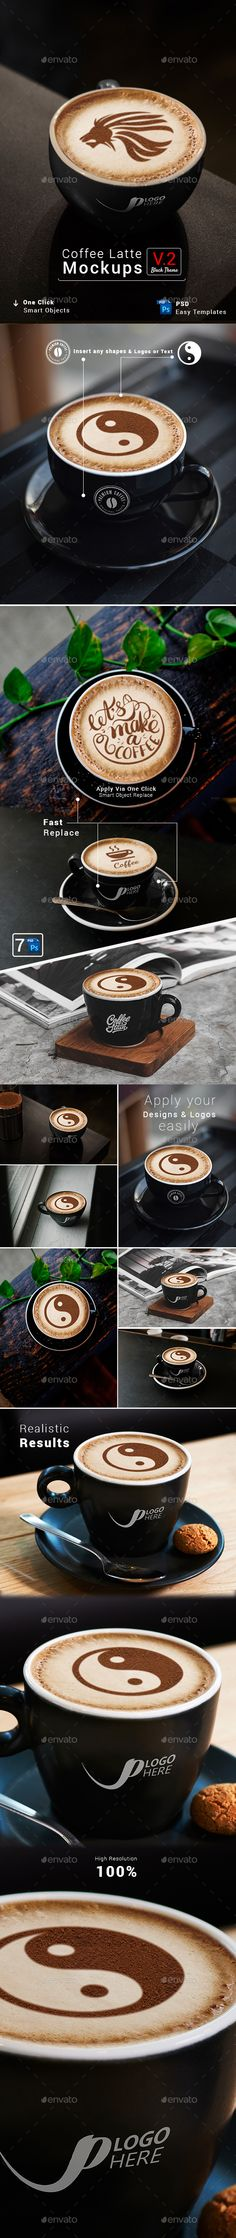 Buy Coffee Latte Mockups Theme by Media_Variety on GraphicRiver. Premium Coffee powder Mousse art cup mock-up pack for web or presentations imaging , hero images , sliders , and prin. Coffee Latte, Coffee Shop, Premium Coffee, Cup Art, Photoshop, Vector Shapes, Menu Design, Social Media Graphics, Food Menu